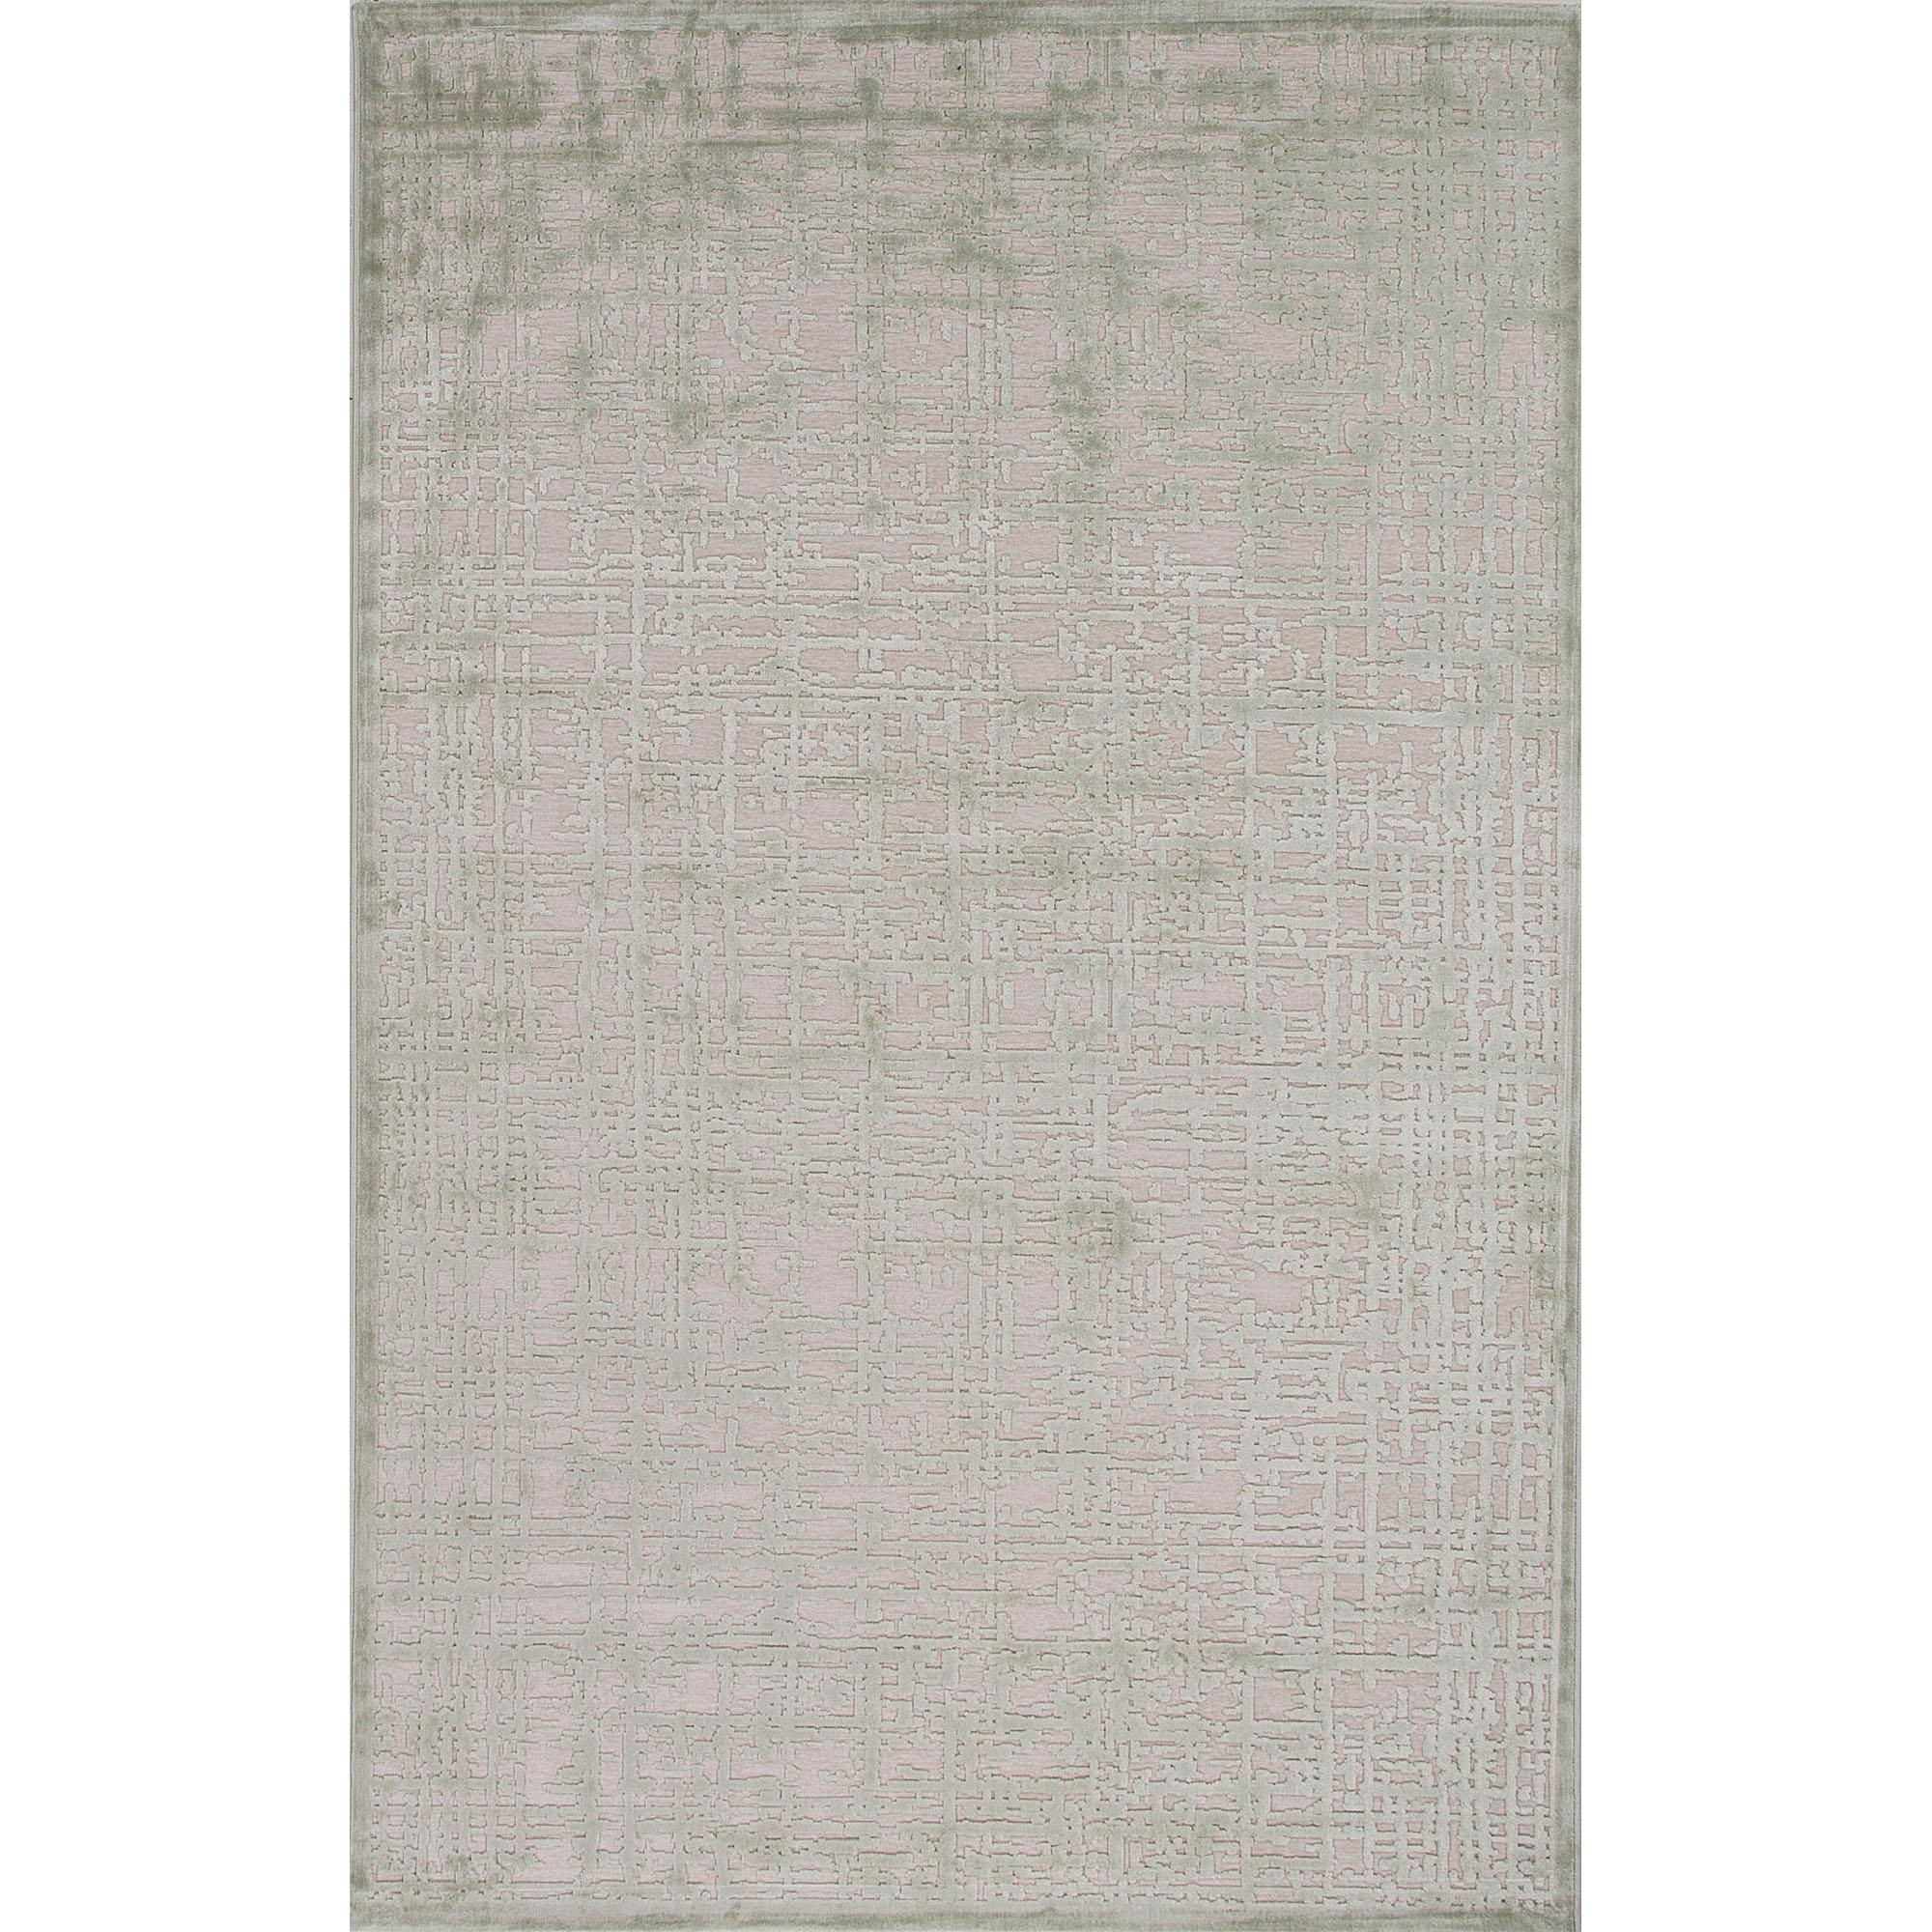 JAIPUR Rugs Fables 7.6 x 9.6 Rug - Item Number: RUG121794